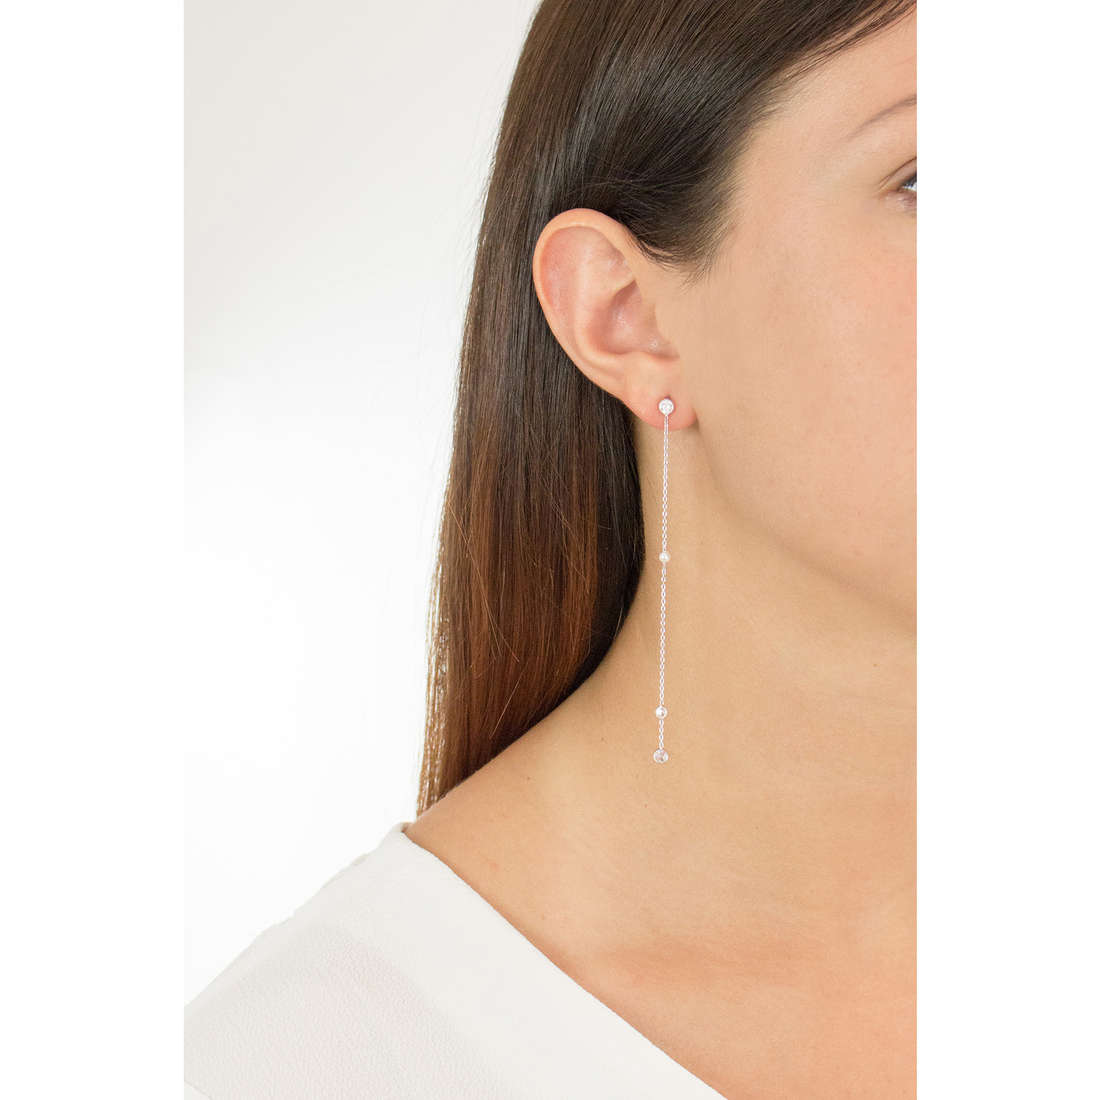 Nomination earrings Bella woman 142663/010 indosso